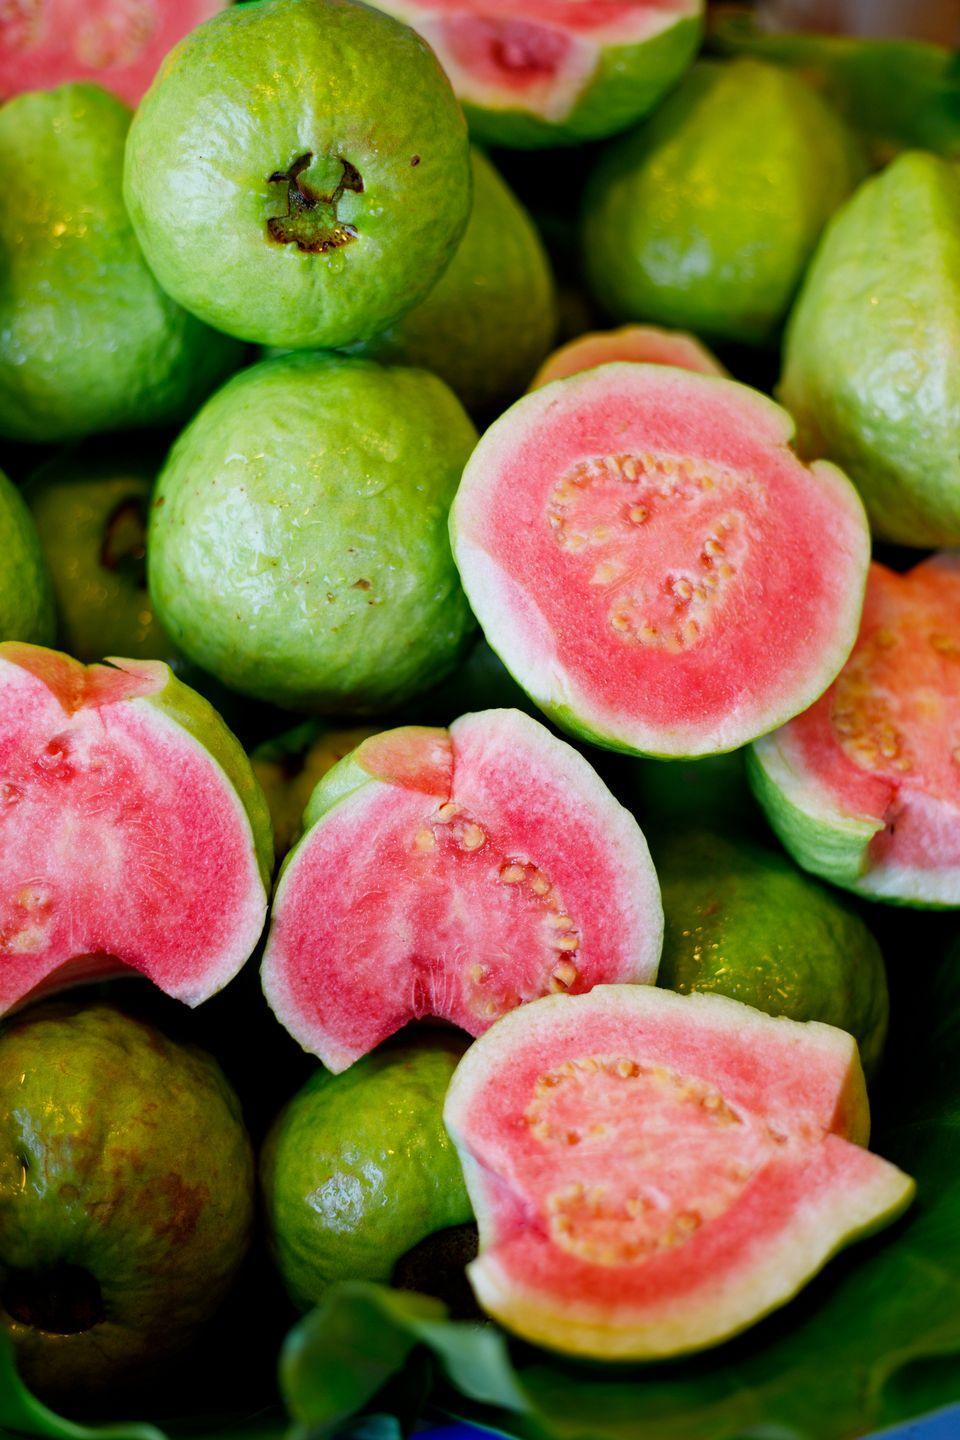 """<p>Give your immune system a boost with guava. They're rich in vitamin C, <a href=""""https://www.goodhousekeeping.com/health/diet-nutrition/g2065/potassium-superfoods/"""" rel=""""nofollow noopener"""" target=""""_blank"""" data-ylk=""""slk:potassium"""" class=""""link rapid-noclick-resp"""">potassium</a> and fiber, and have a fair amount of folate. With a tropical tang, guavas can be used to make a tasty jam, or turned into a syrup or glaze to use in a host of recipes. </p>"""